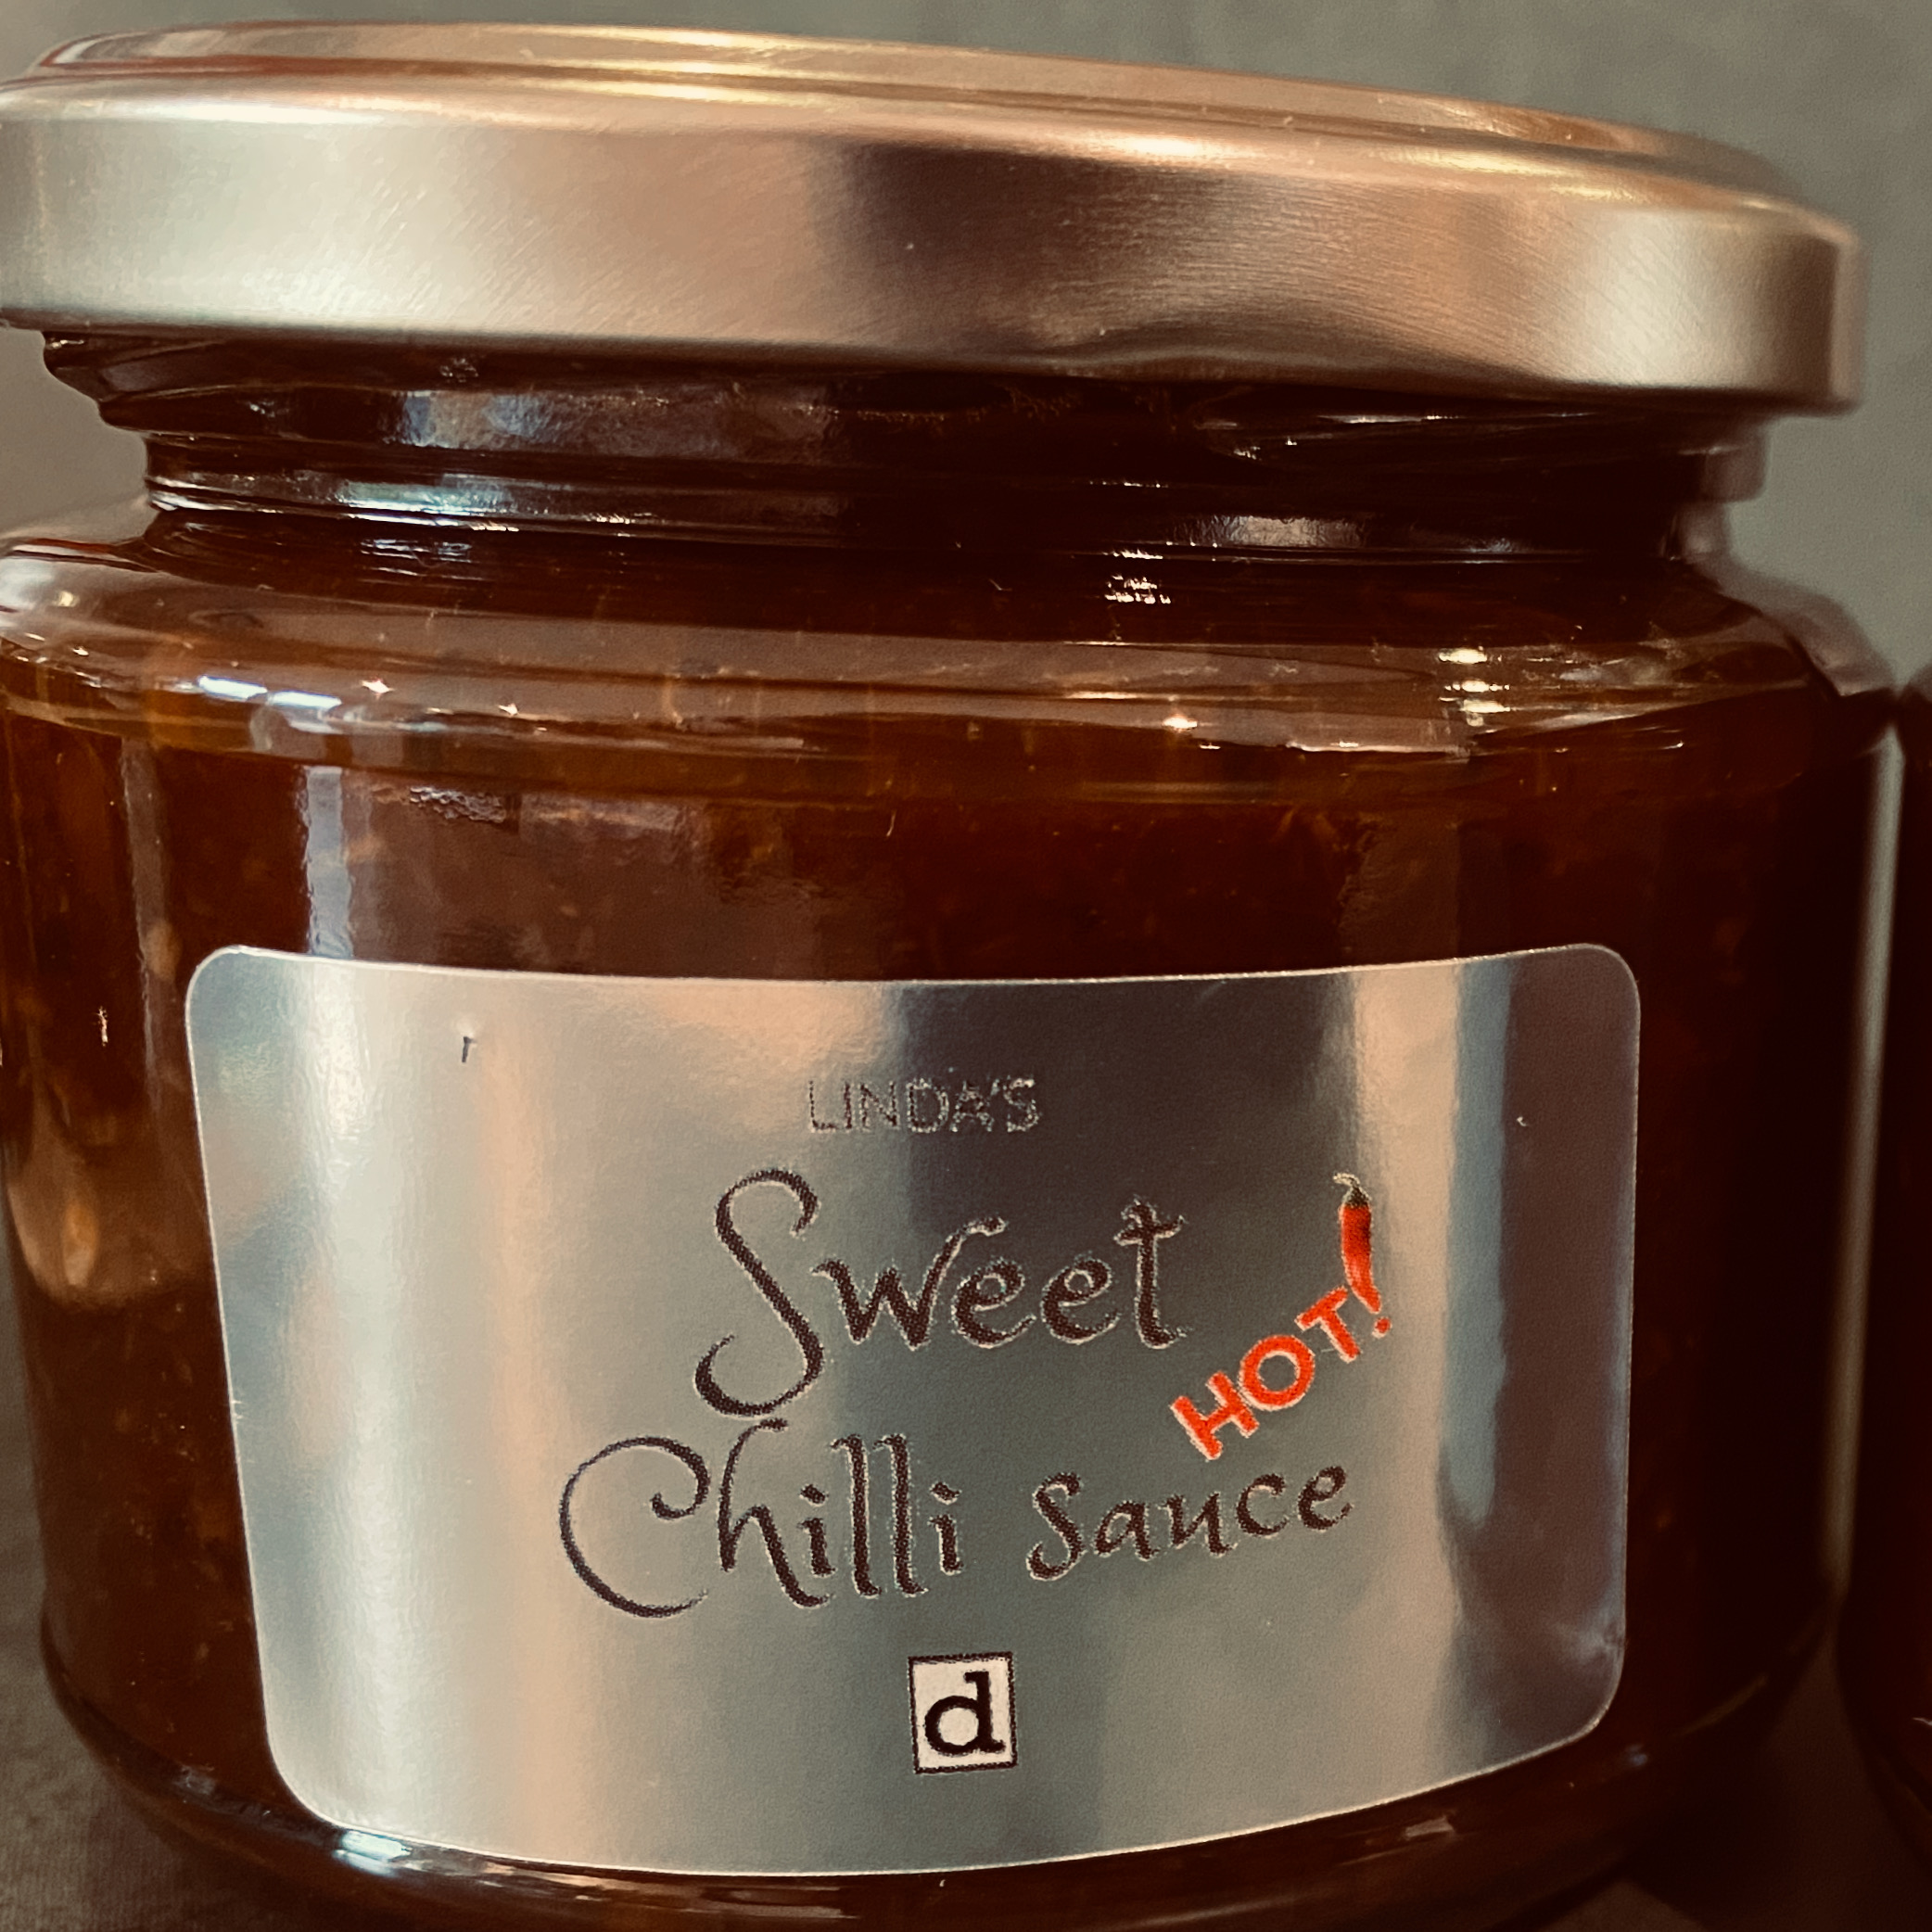 A jar of sweet chilli sauce with a shiny label